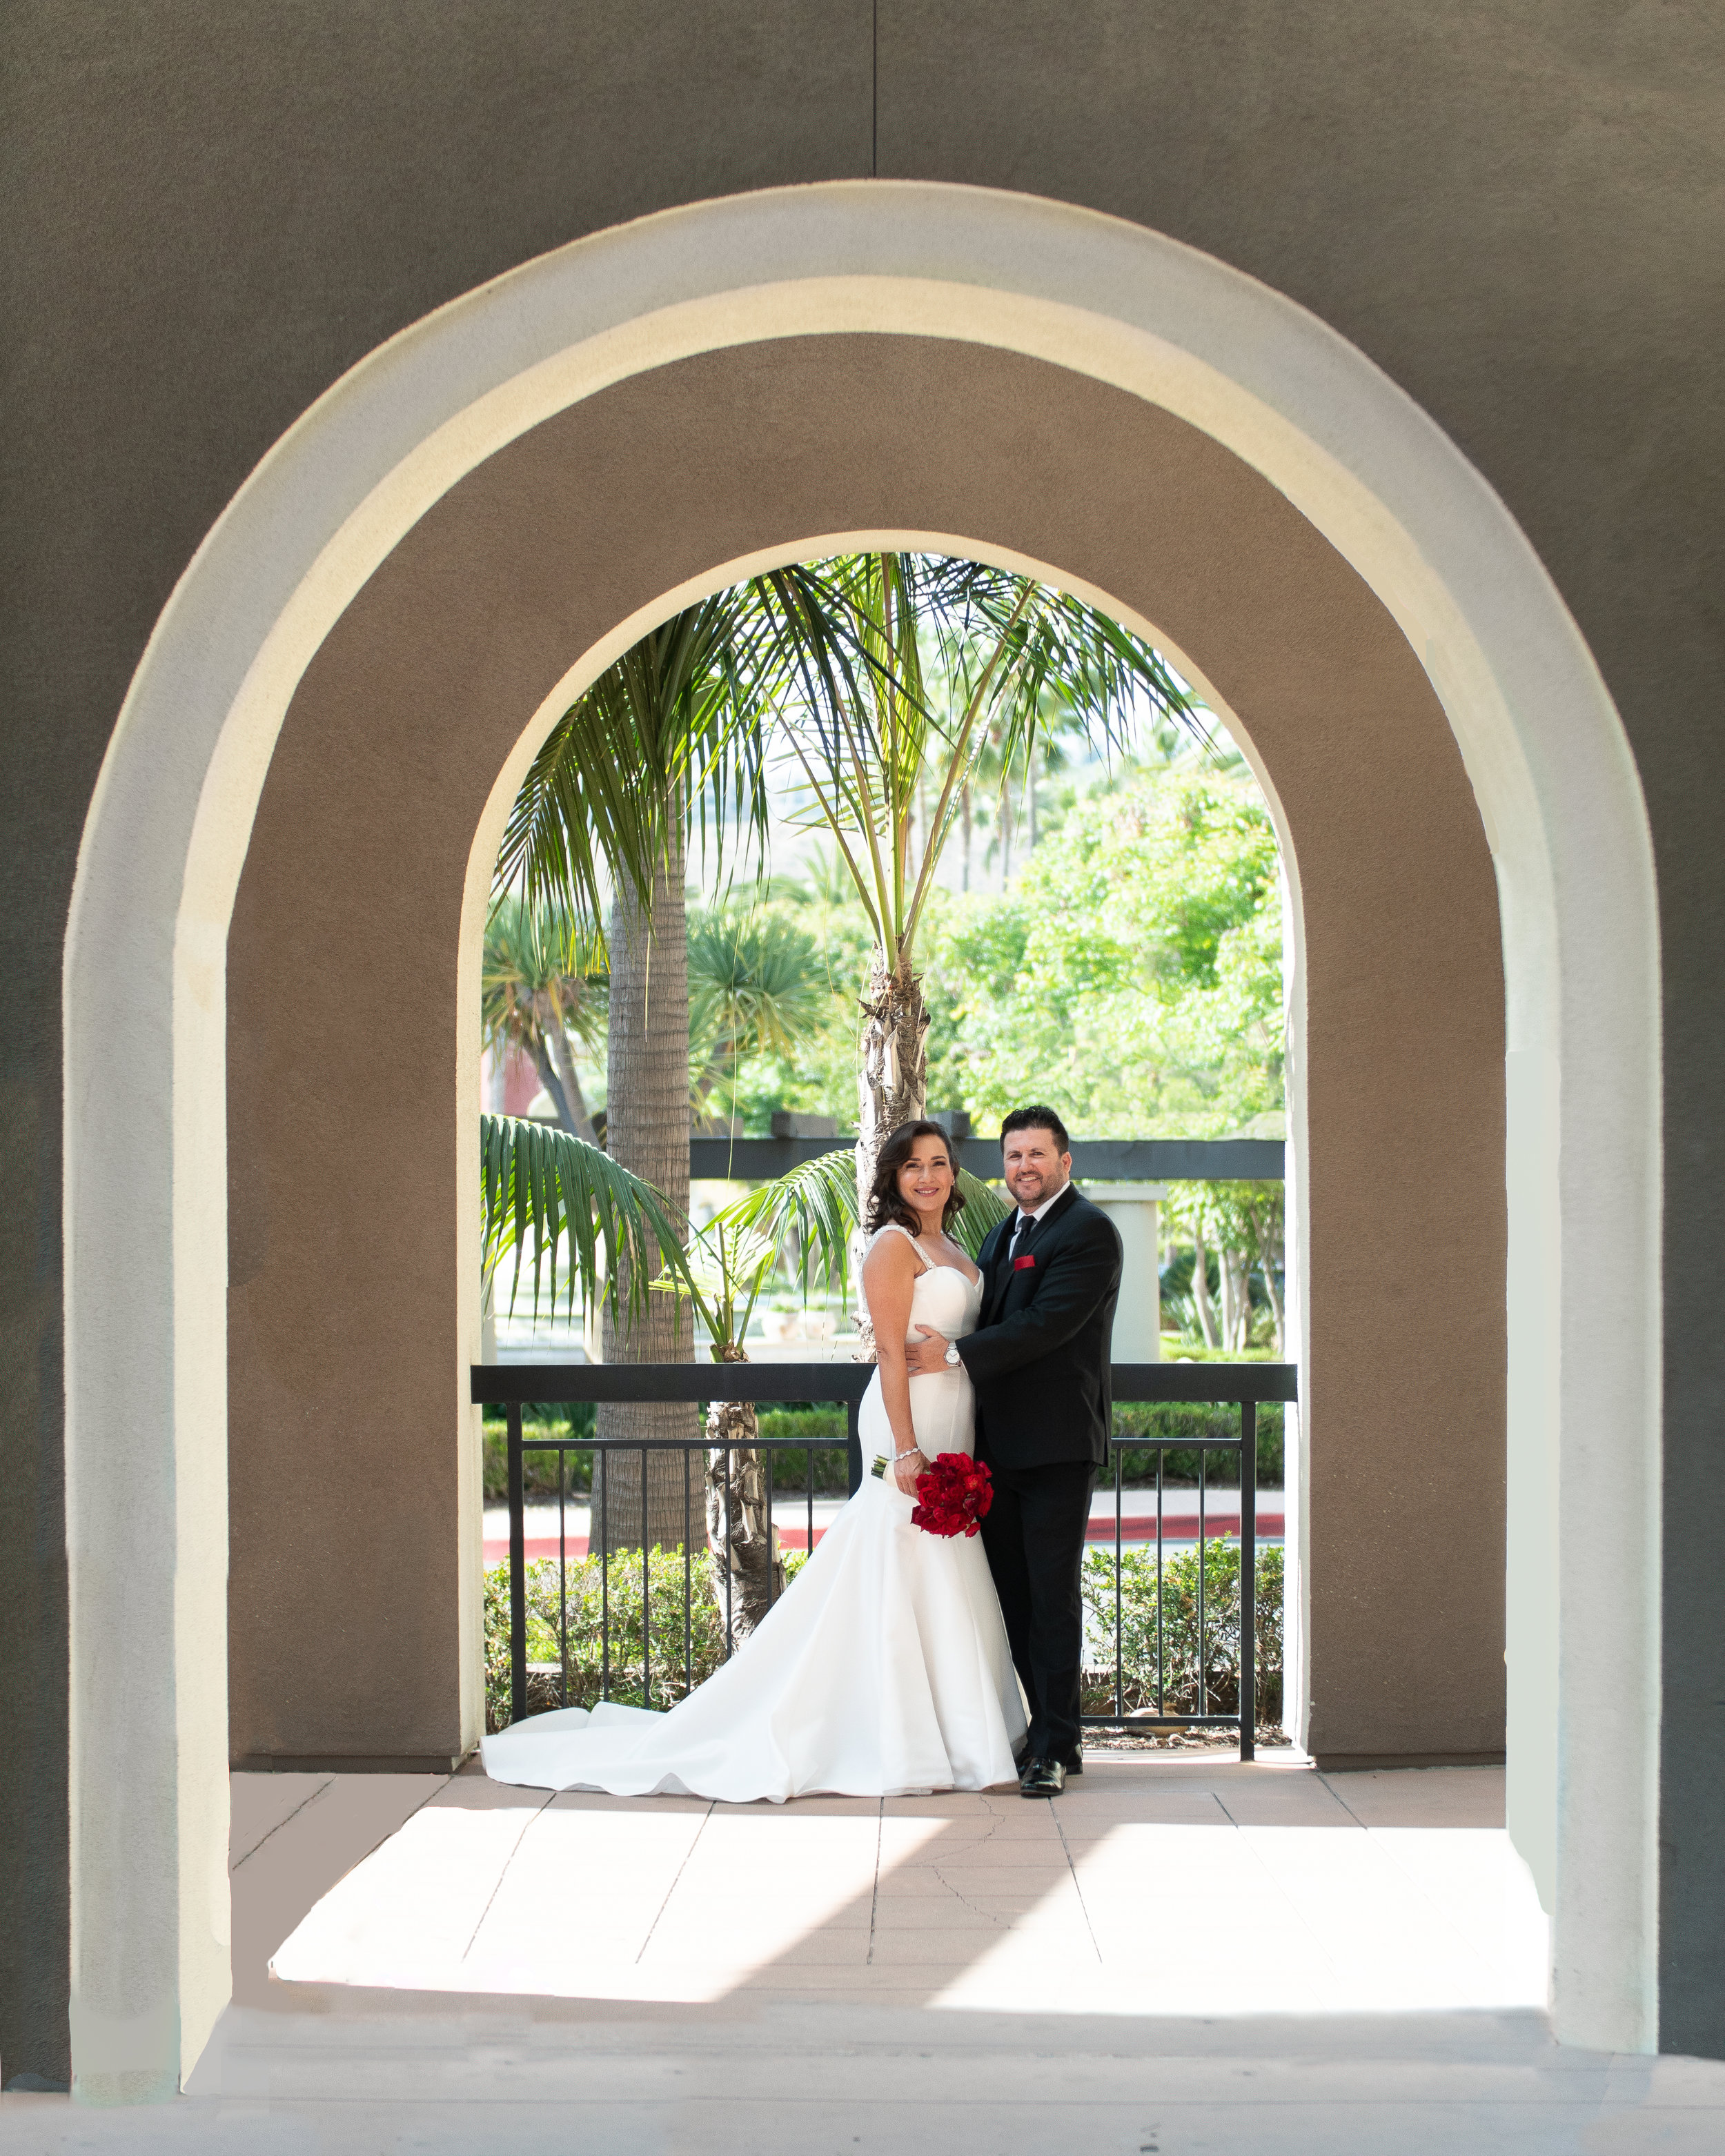 Wedding - Stan and Mayte - 6-28-19 - rev 7-19-19 - 72dpi - ok for Internet - Web Sites - Social Media - Cell Phone Viewing etc-27.jpg